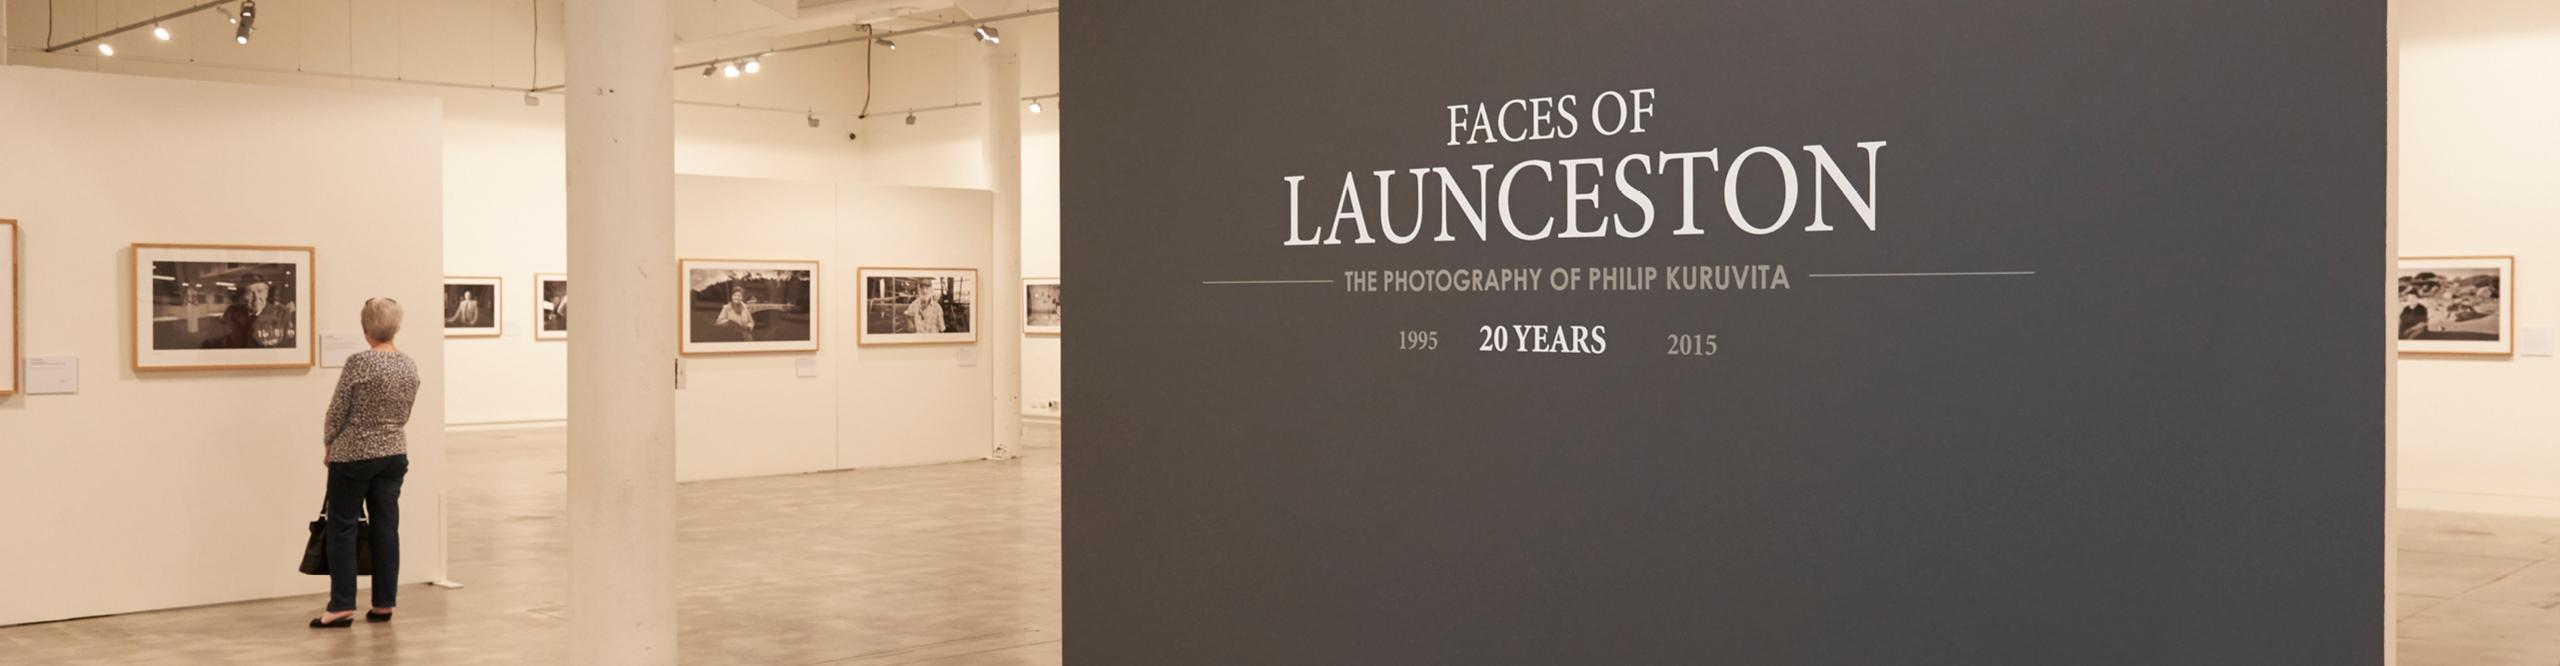 EVENTS_FacesExhibition